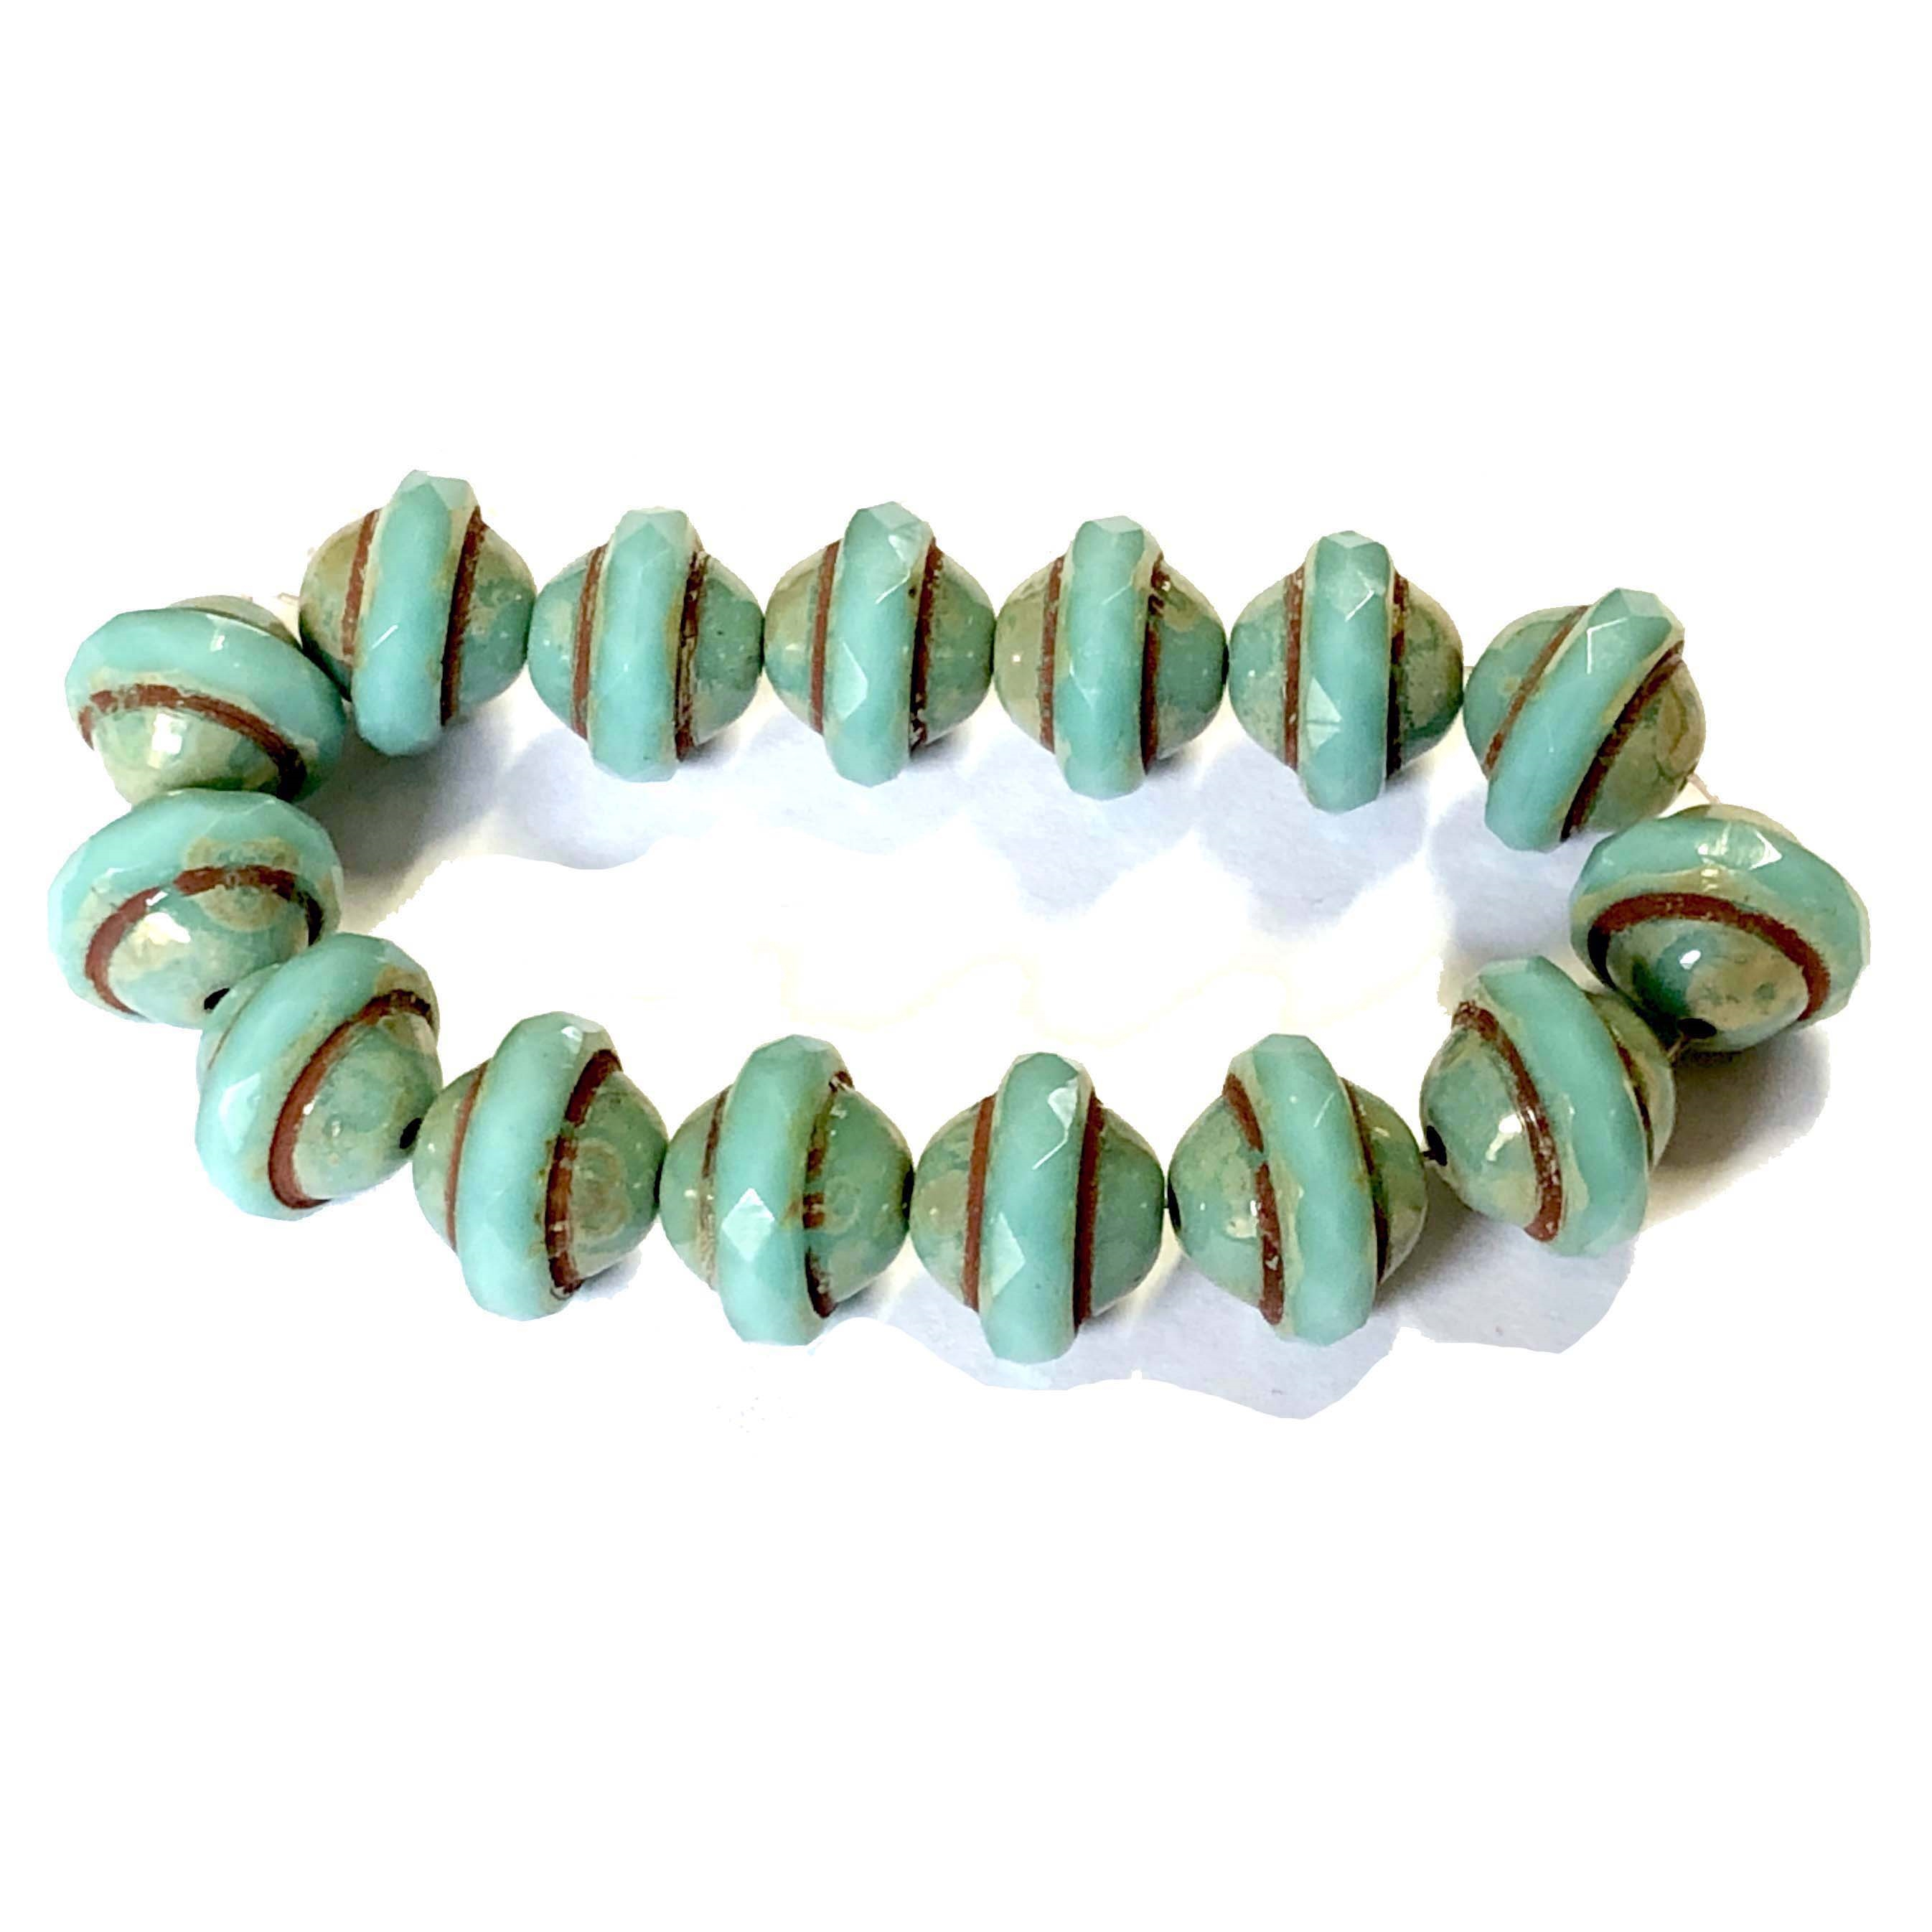 Saturn Tea Green Picasso finish beads, aqua green, turquoise, beads, Czech glass beads, saucer beads, fire polished, Czech, glass, Picasso, drilled, glass beads, US made, B'sue Boutiques, transparent beads, faceted beads, 8x10mm, 09339